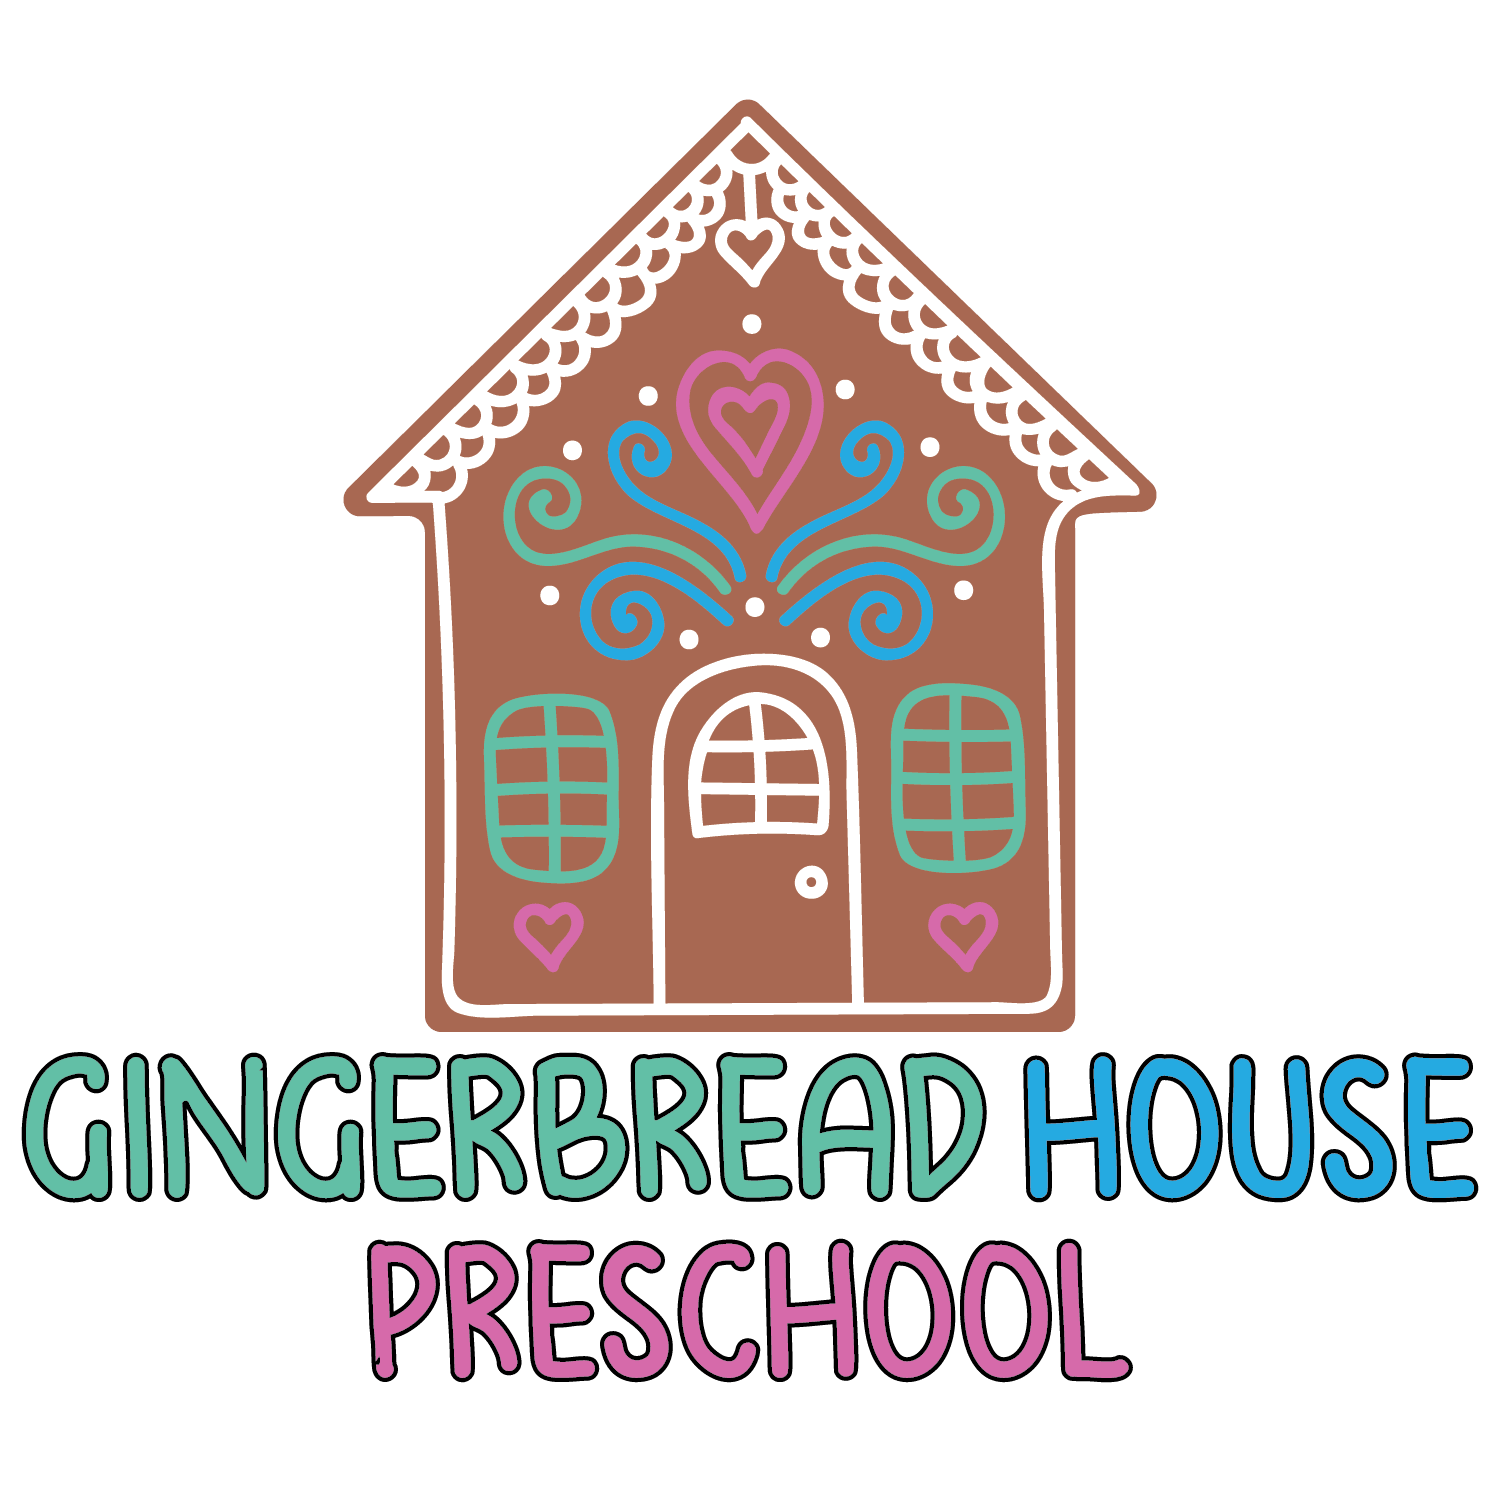 GingerbreadHouse Preschool Logo